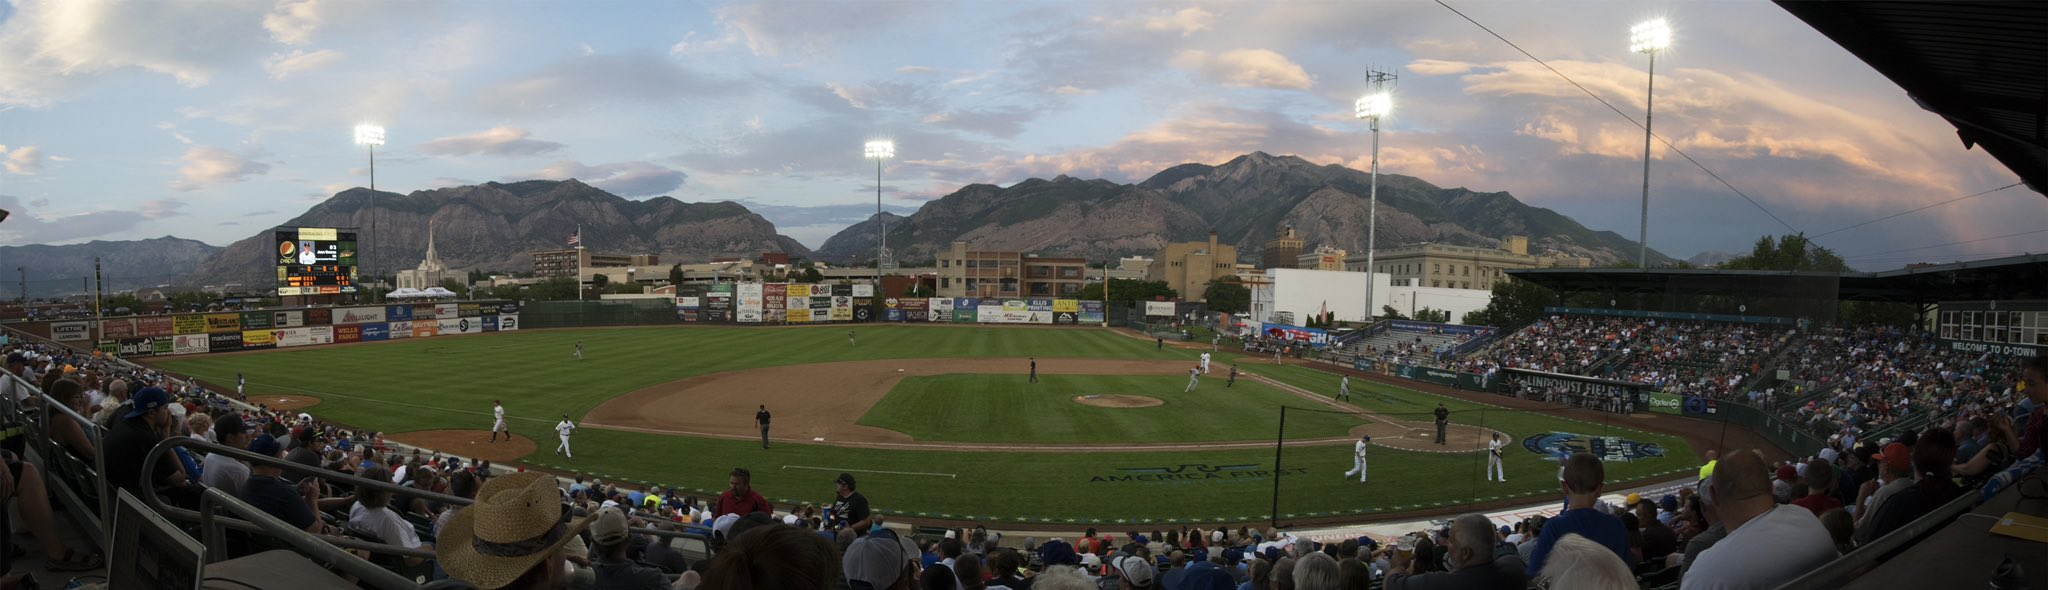 We love mountains with our baseball 😍  @ogdenraptors https://t.co/LG198E1DIX